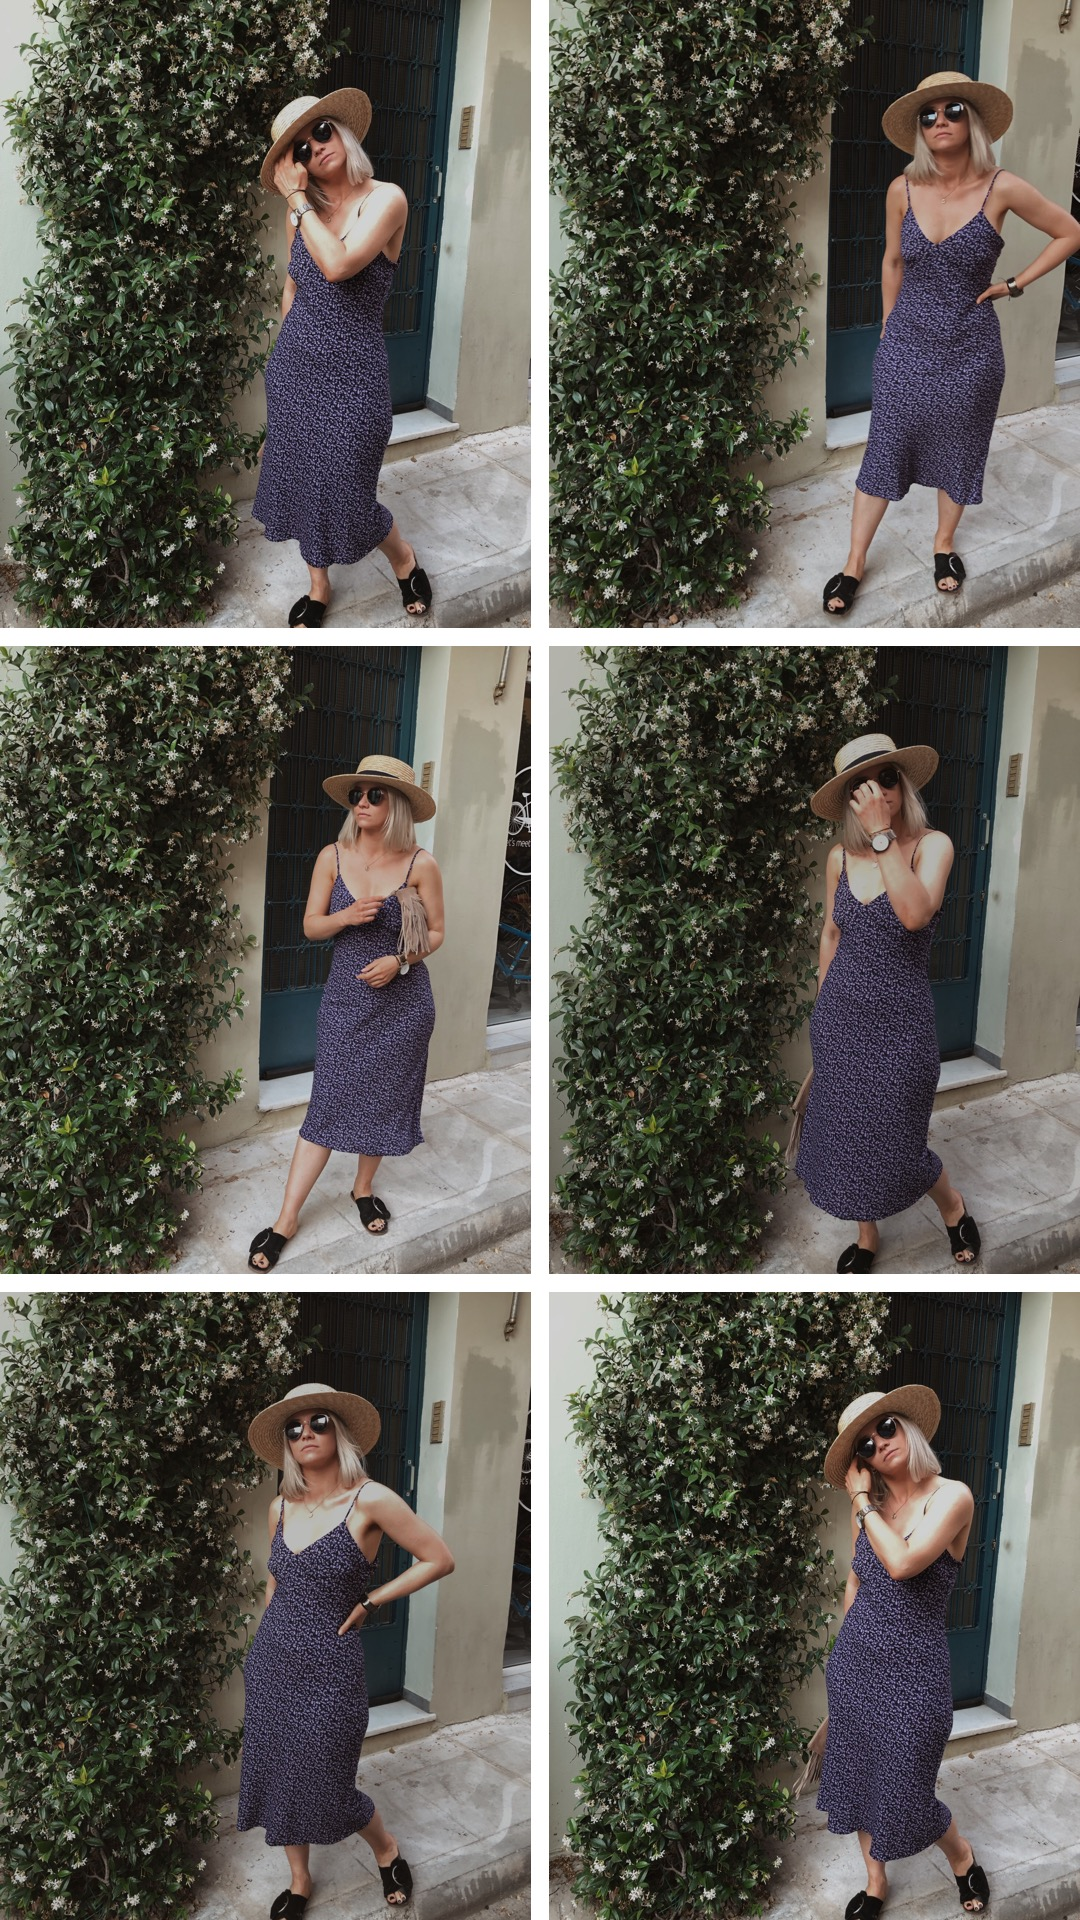 Day trip to Athens, in a vintage slip dress with a straw hat, northern magpie, joey taylor 4